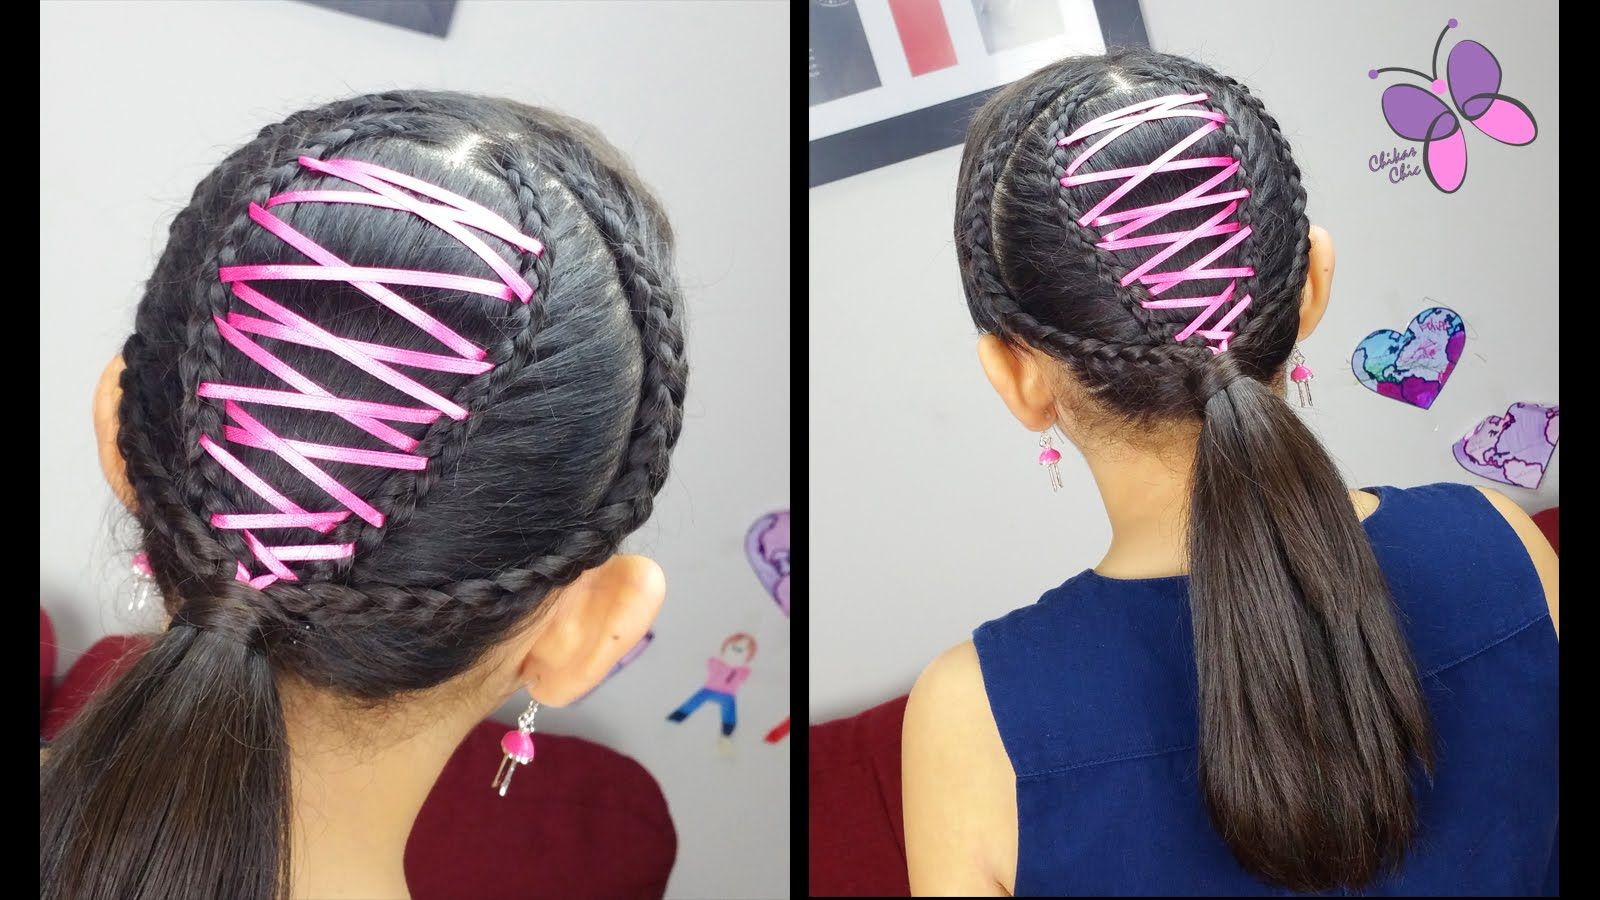 Corset ponytail cute girly hairstyles hairstyles for school